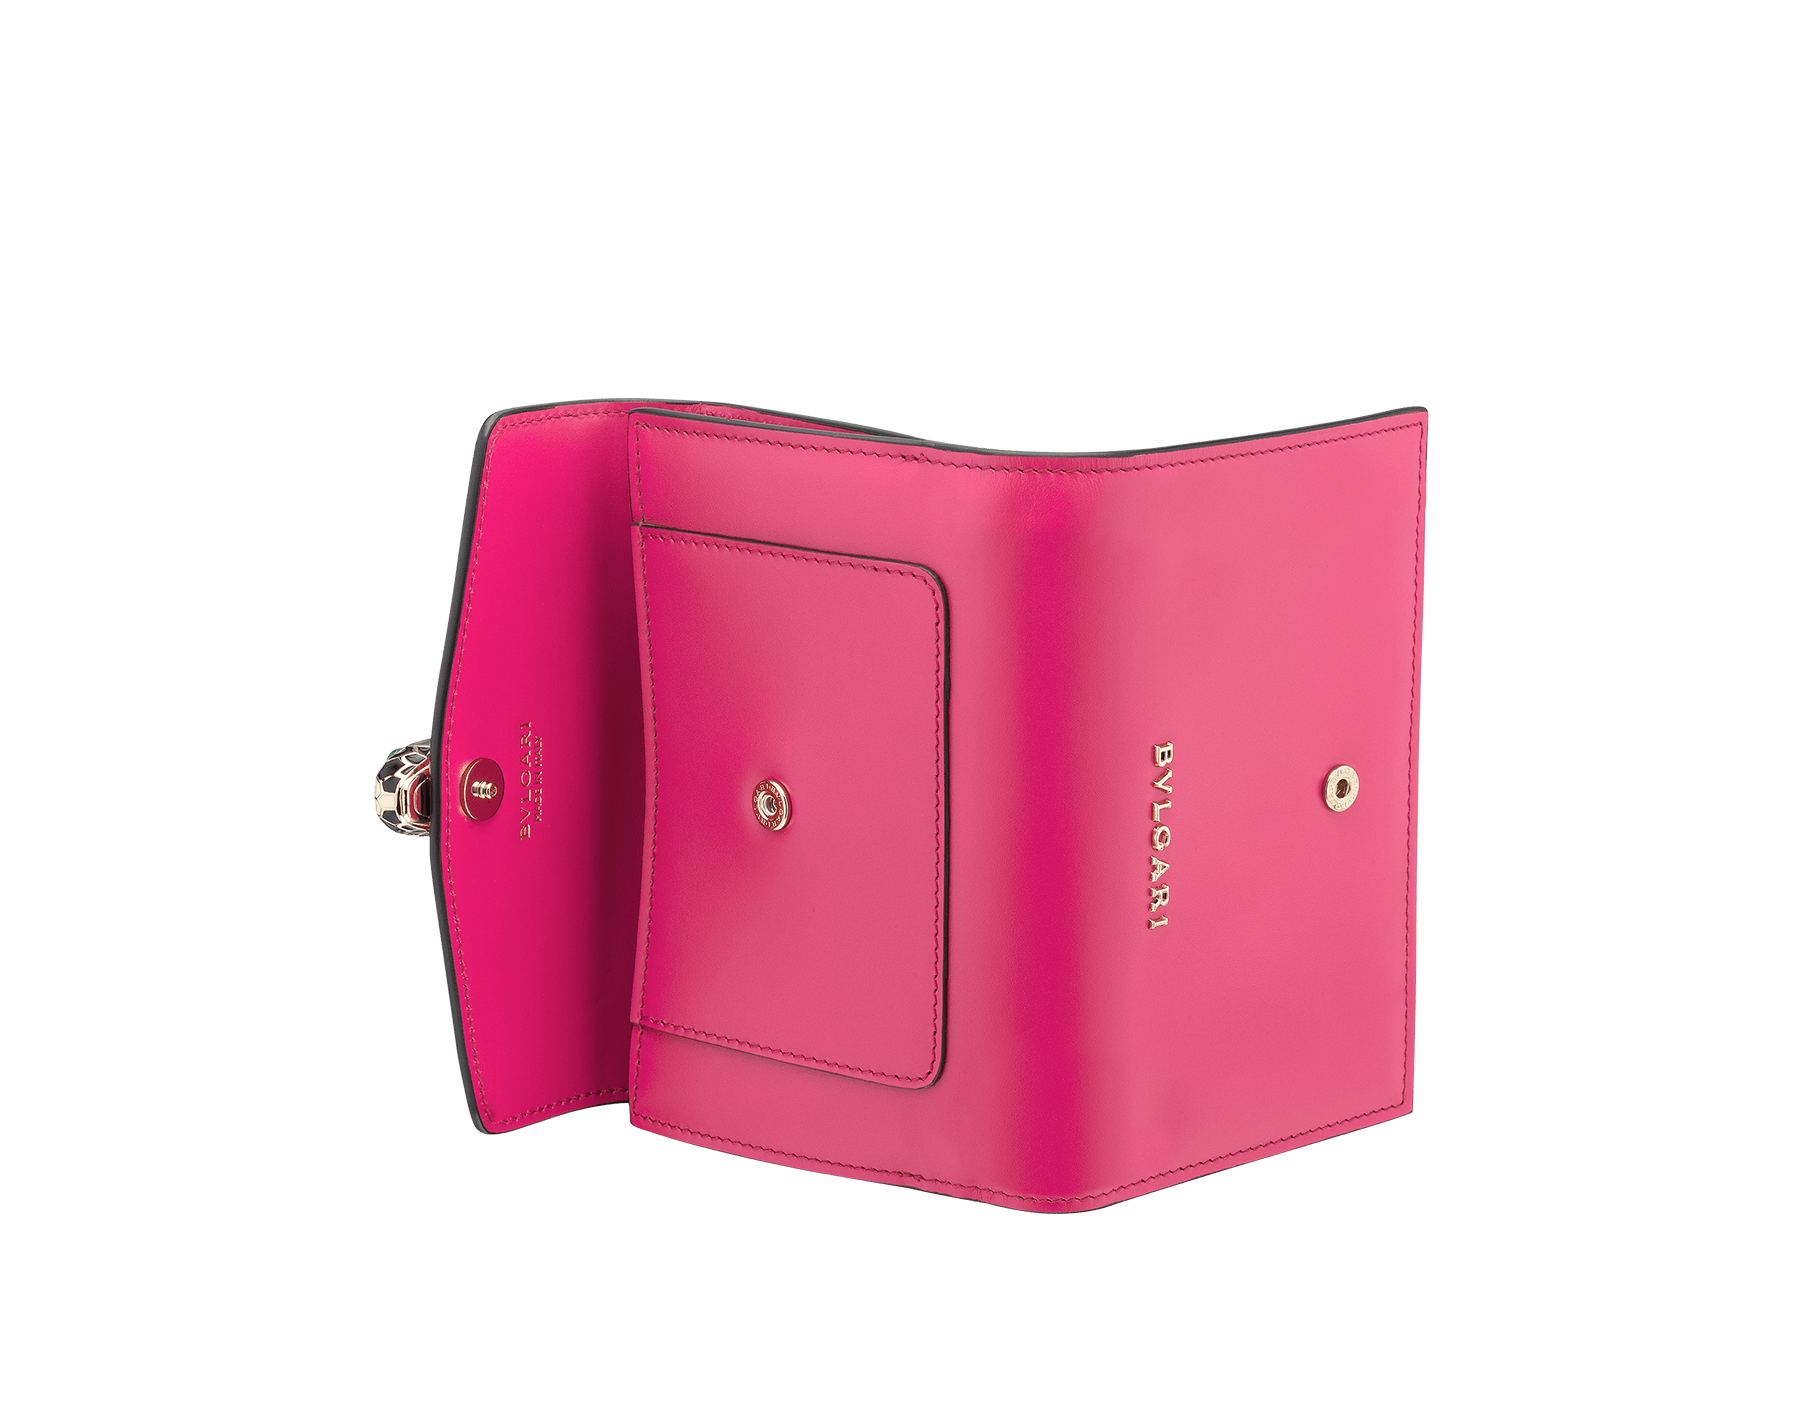 Serpenti Forever compact pochette in jazzy tourmaline and aster amethyst calf leather. Iconic snakehead stud closure in black and white enamel, with green malachite eyes. 287142 image 3